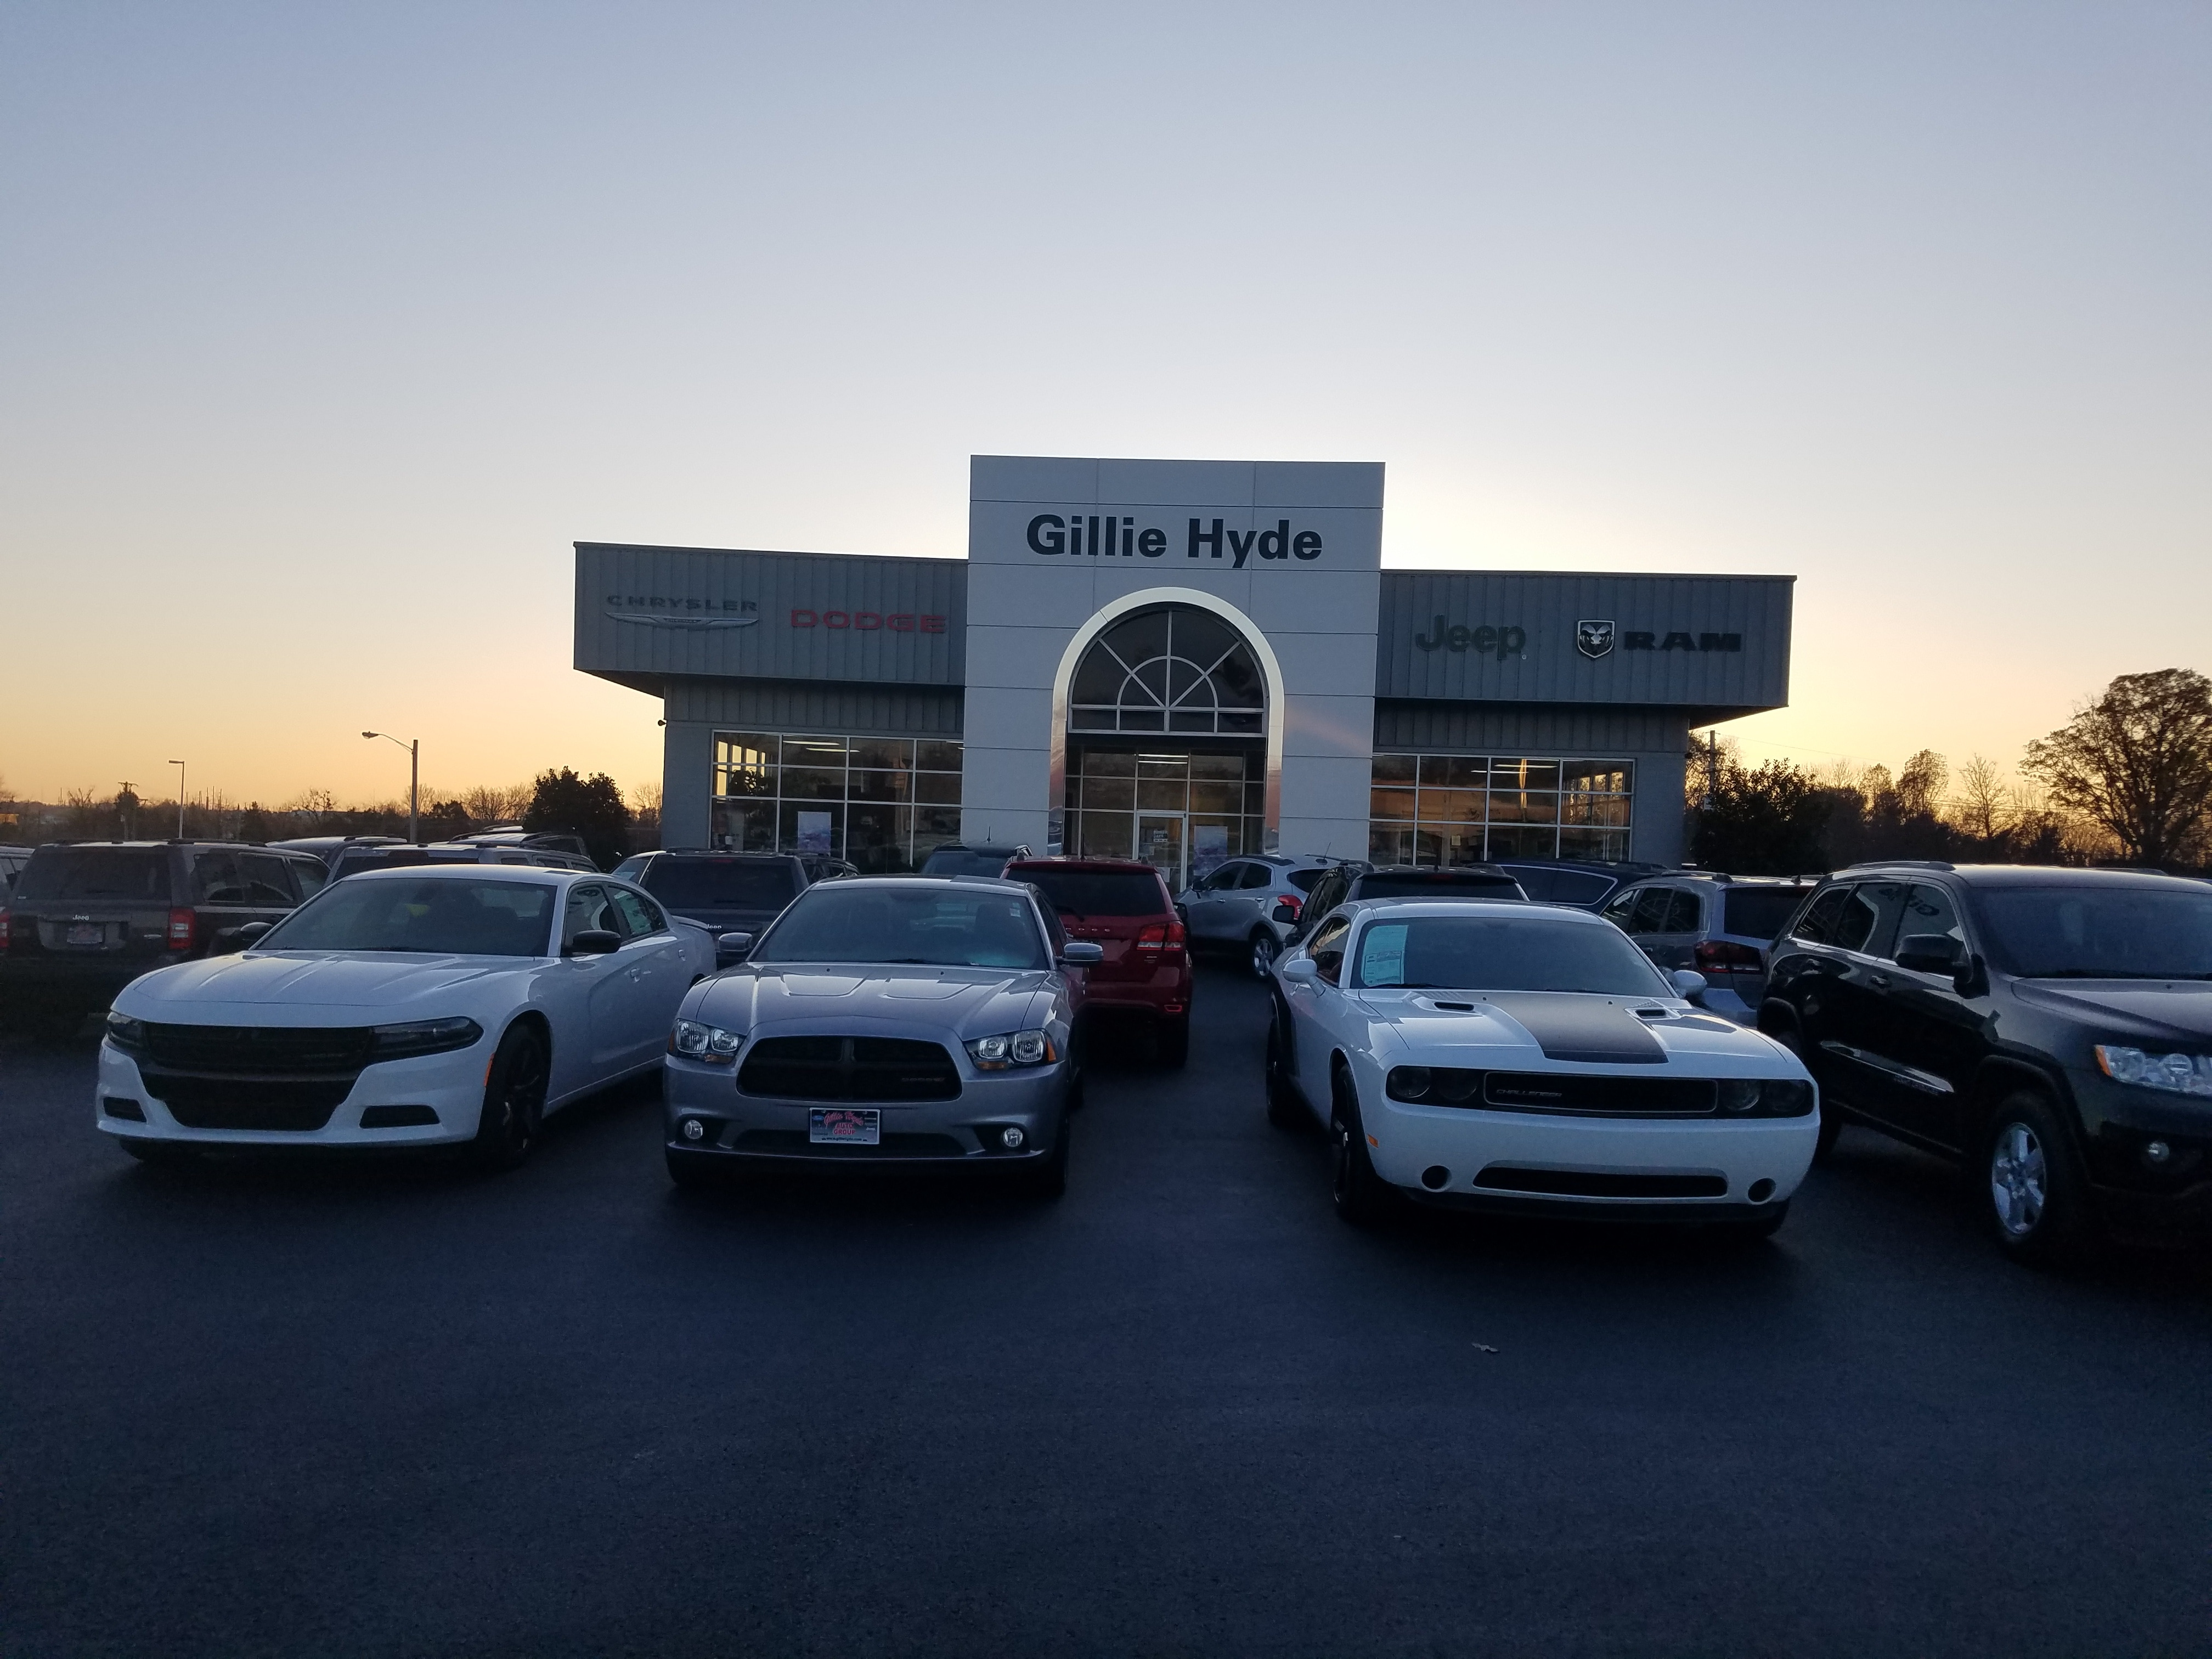 Gillie Hyde Glasgow Ky >> Directions to Our Dealerships - Gillie Hyde Auto in Glasgow, KY